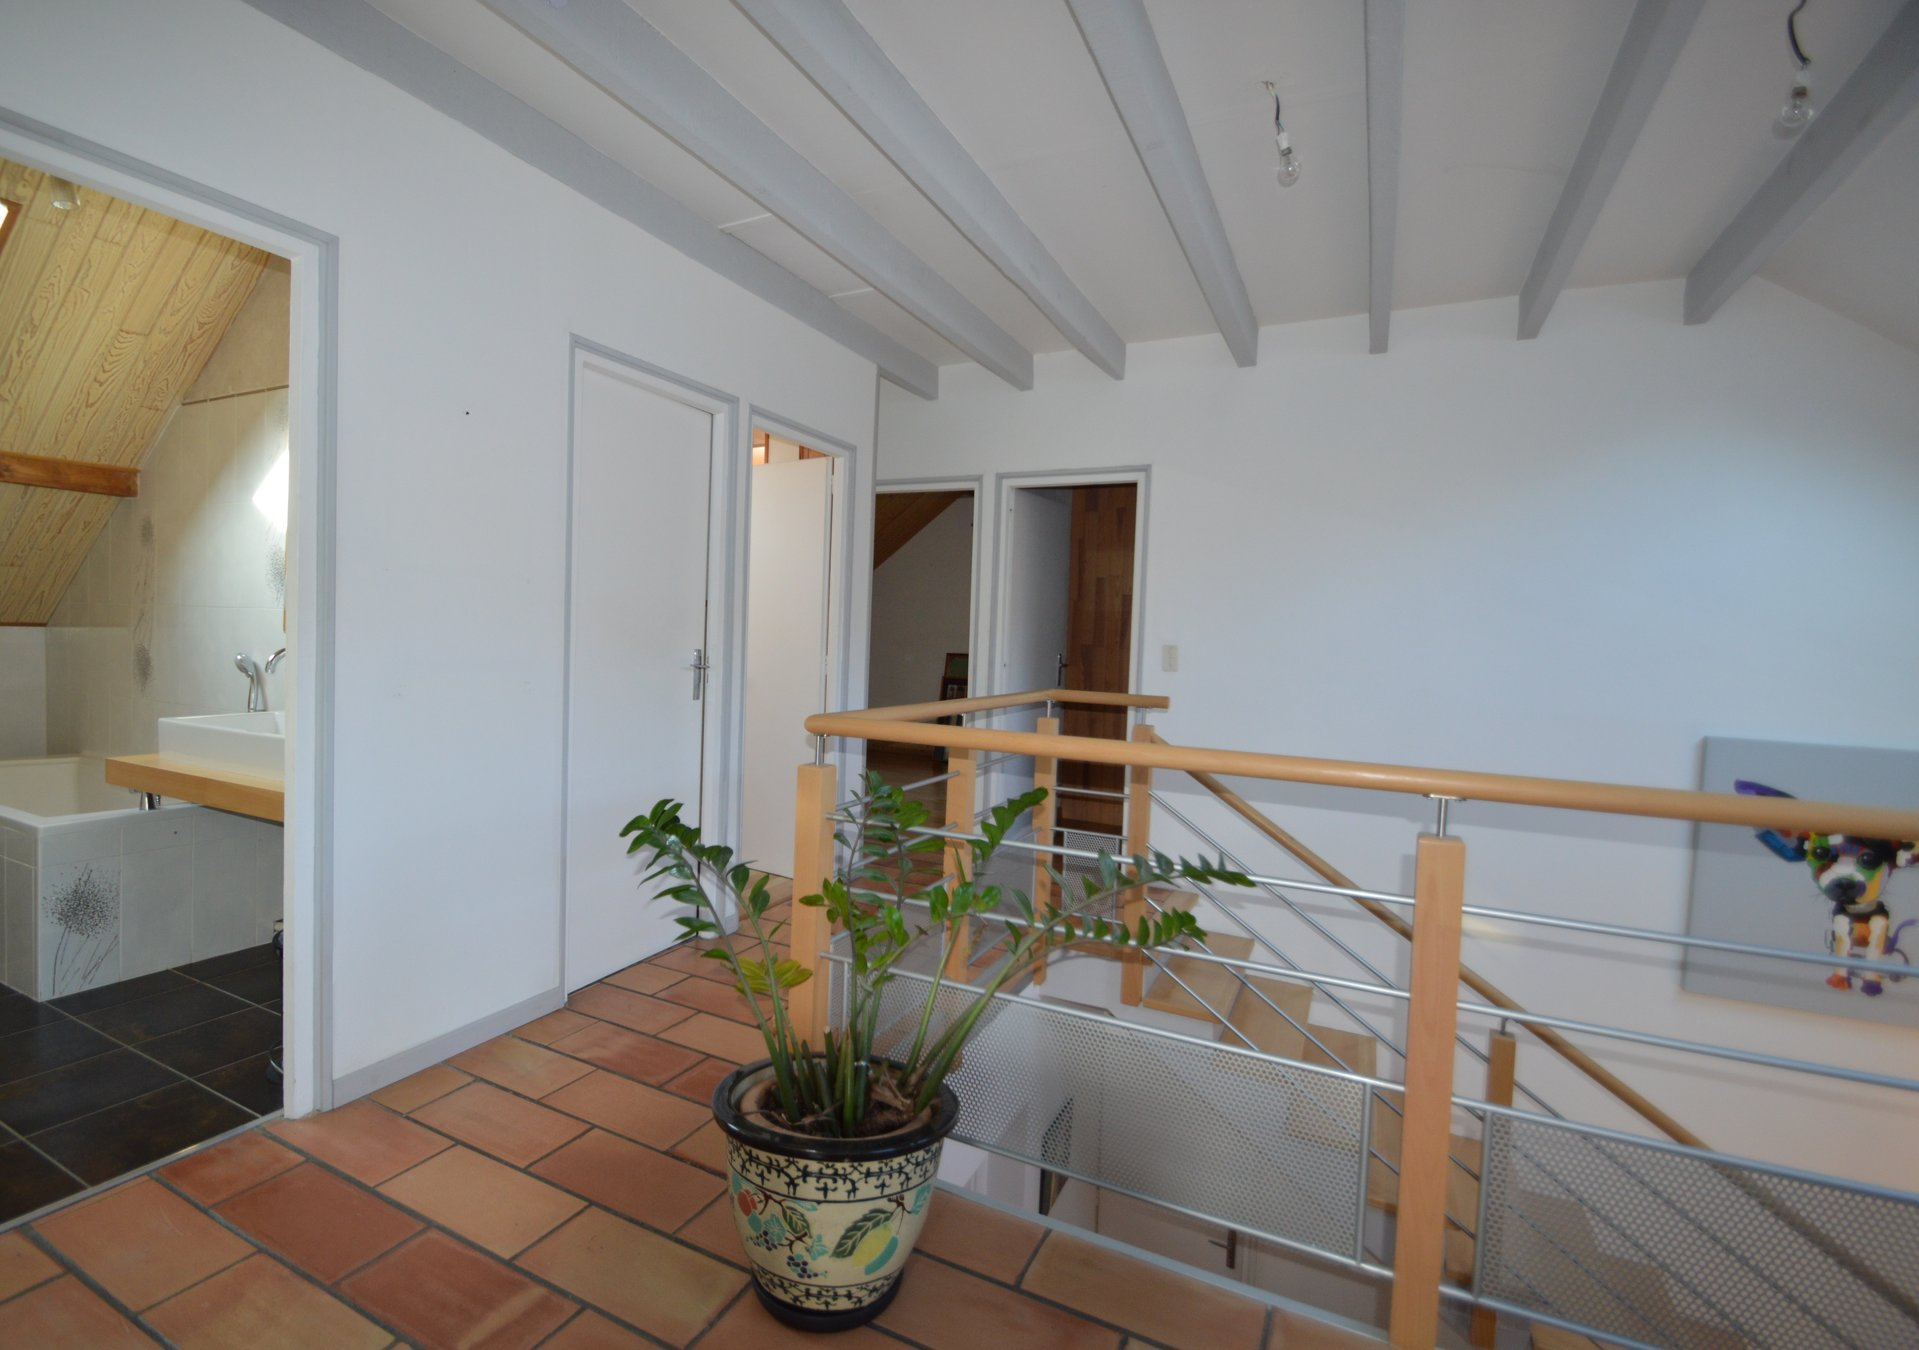 HOUSE OF 170 M² TWO STEPS FROM THE PORT